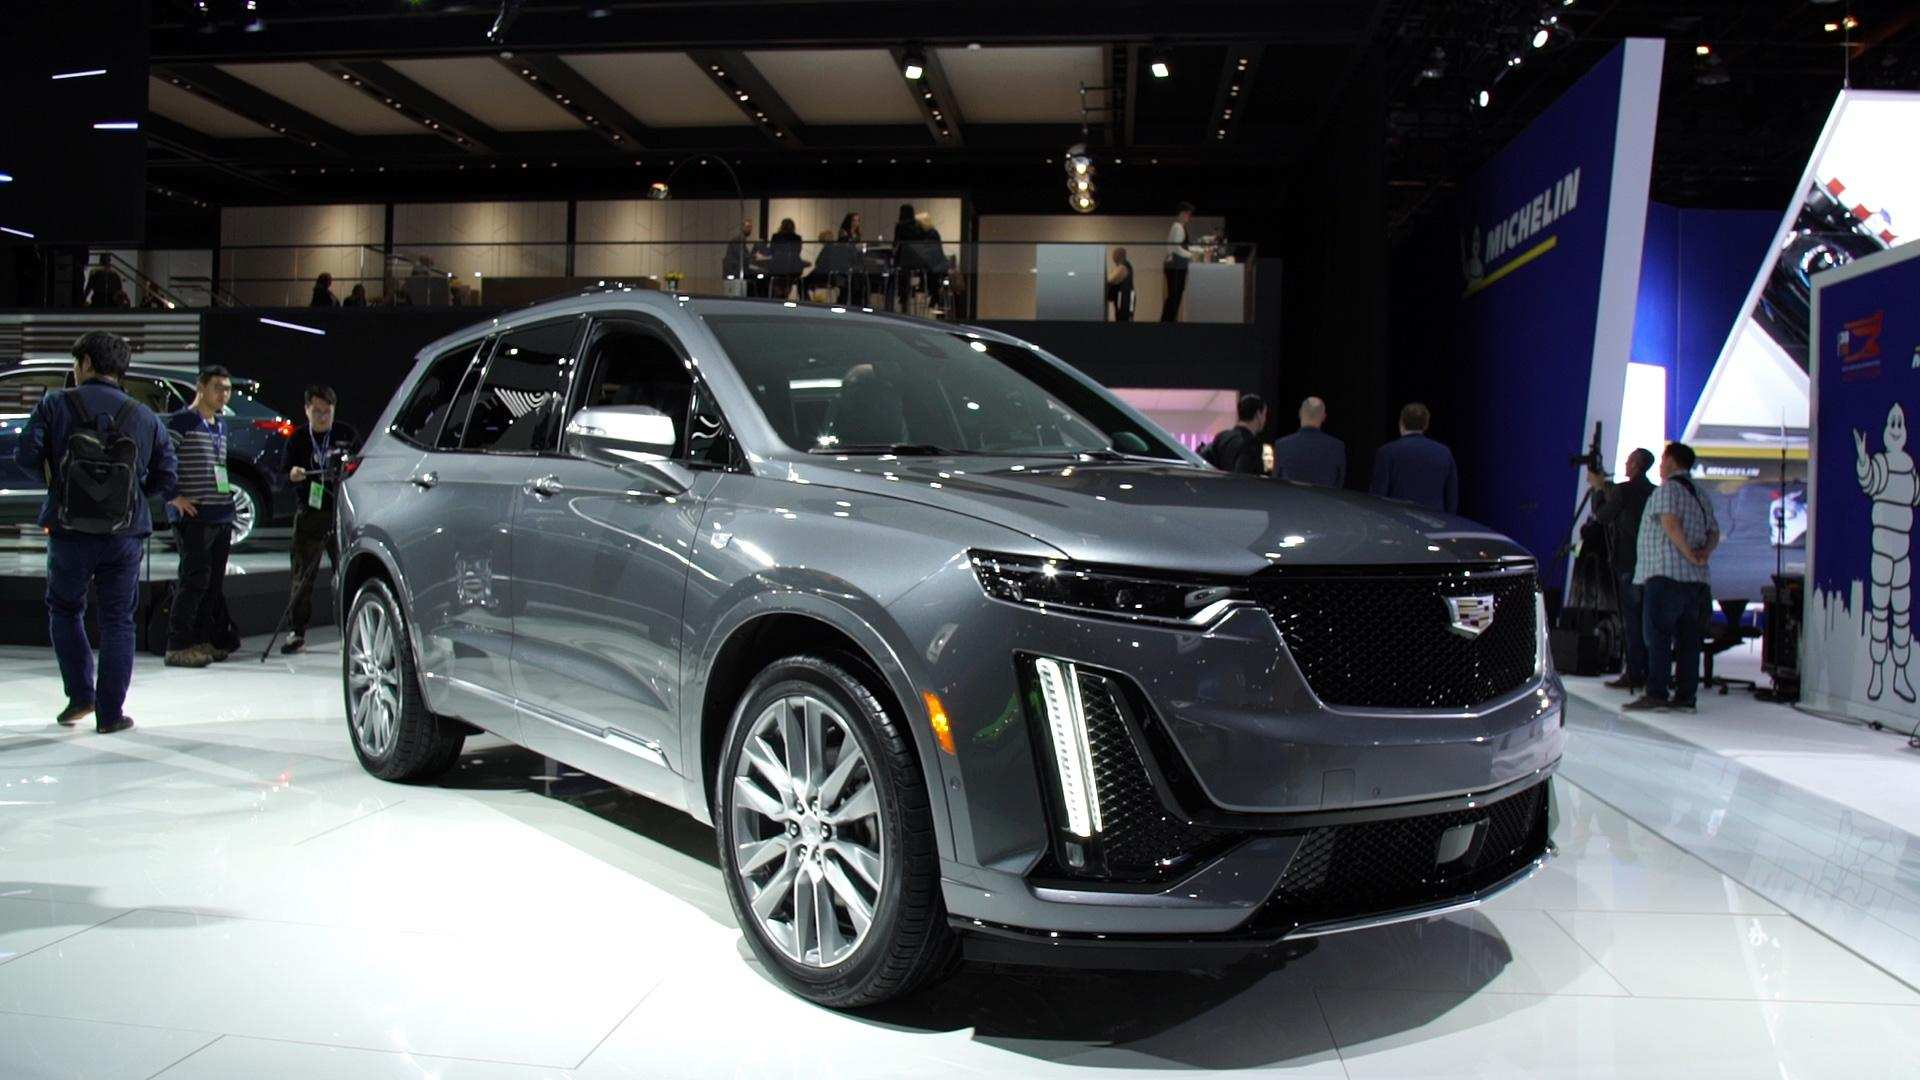 36 Gallery of Cadillac Xt6 2020 Release Date for Cadillac Xt6 2020